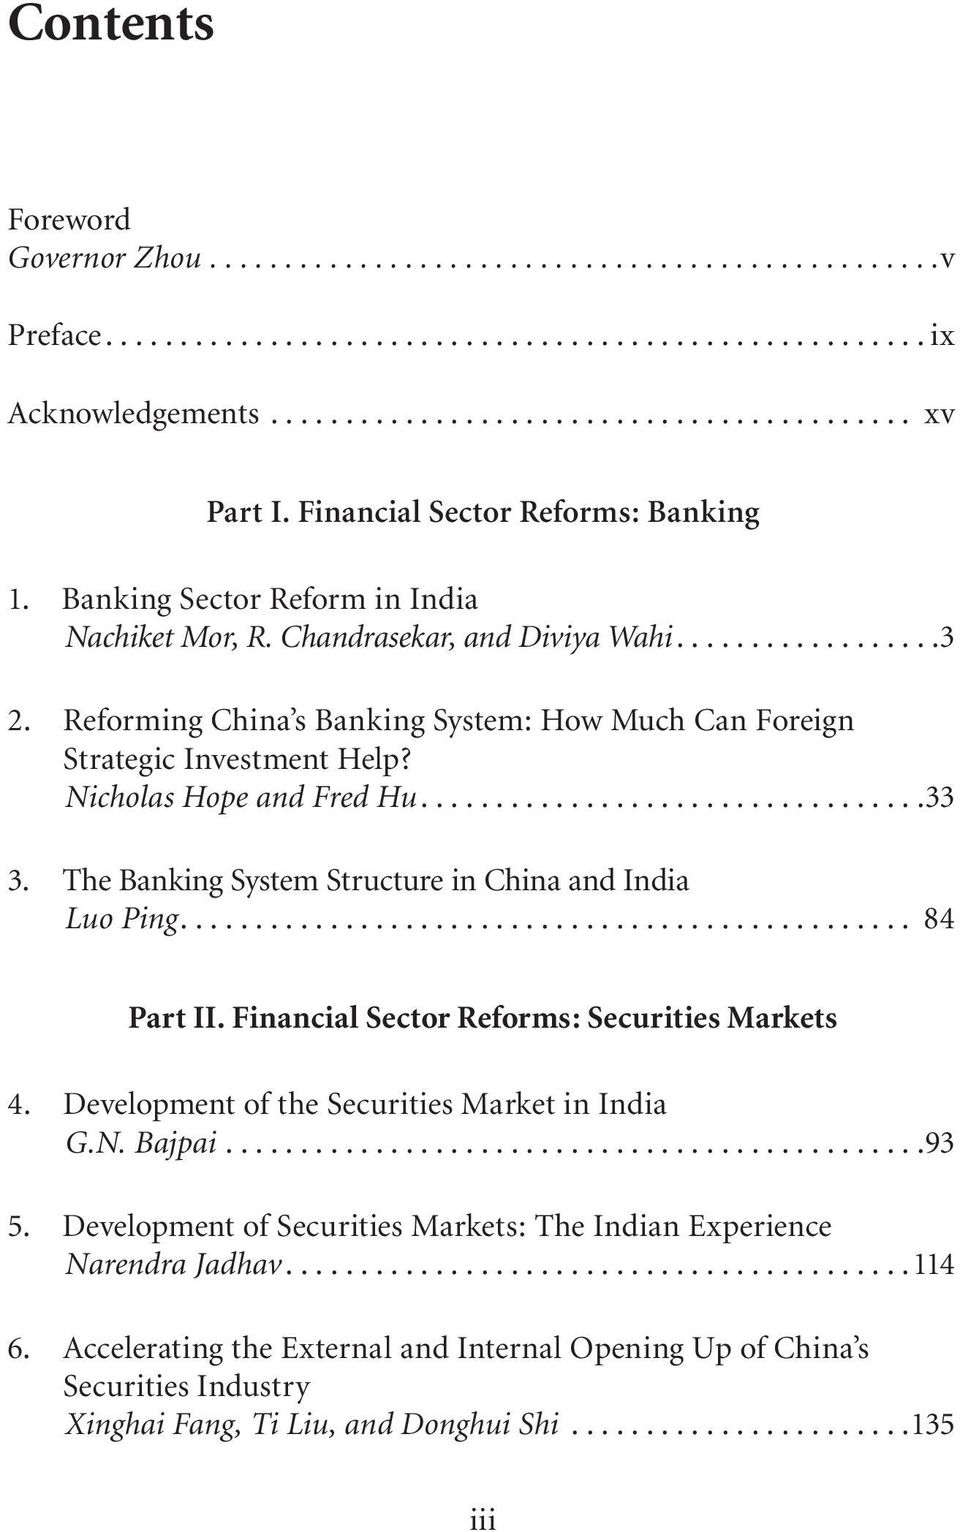 The Banking System Structure in China and India Luo Ping.... 84 Part II. Financial Sector Reforms: Securities Markets 4. Development of the Securities Market in India G.N. Bajpai.